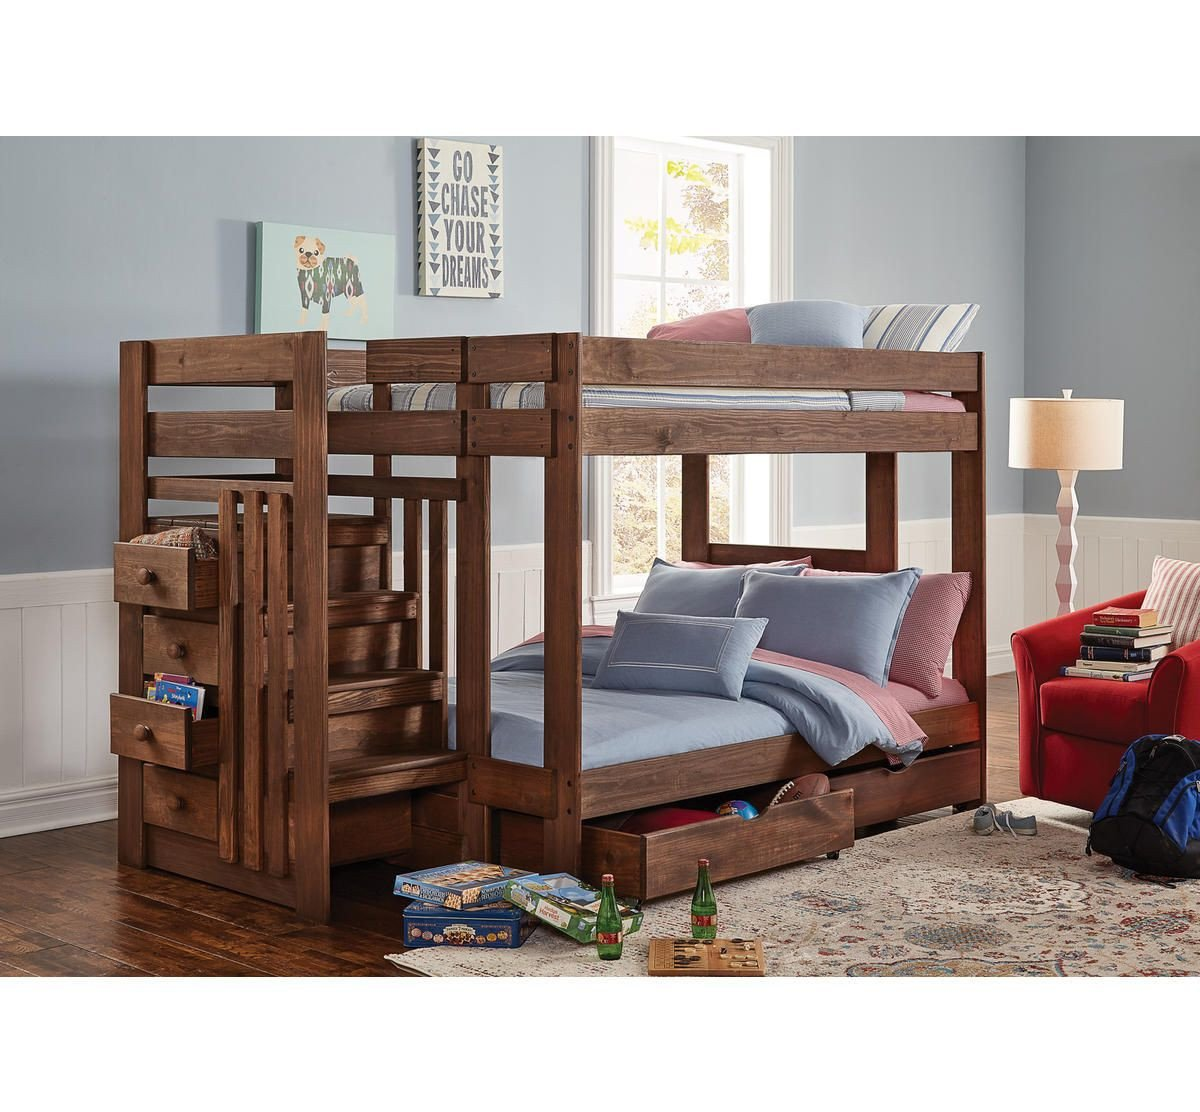 Kids Bunk Bed Bedroom Set Lovely Baylee Full Over Full Stairbed